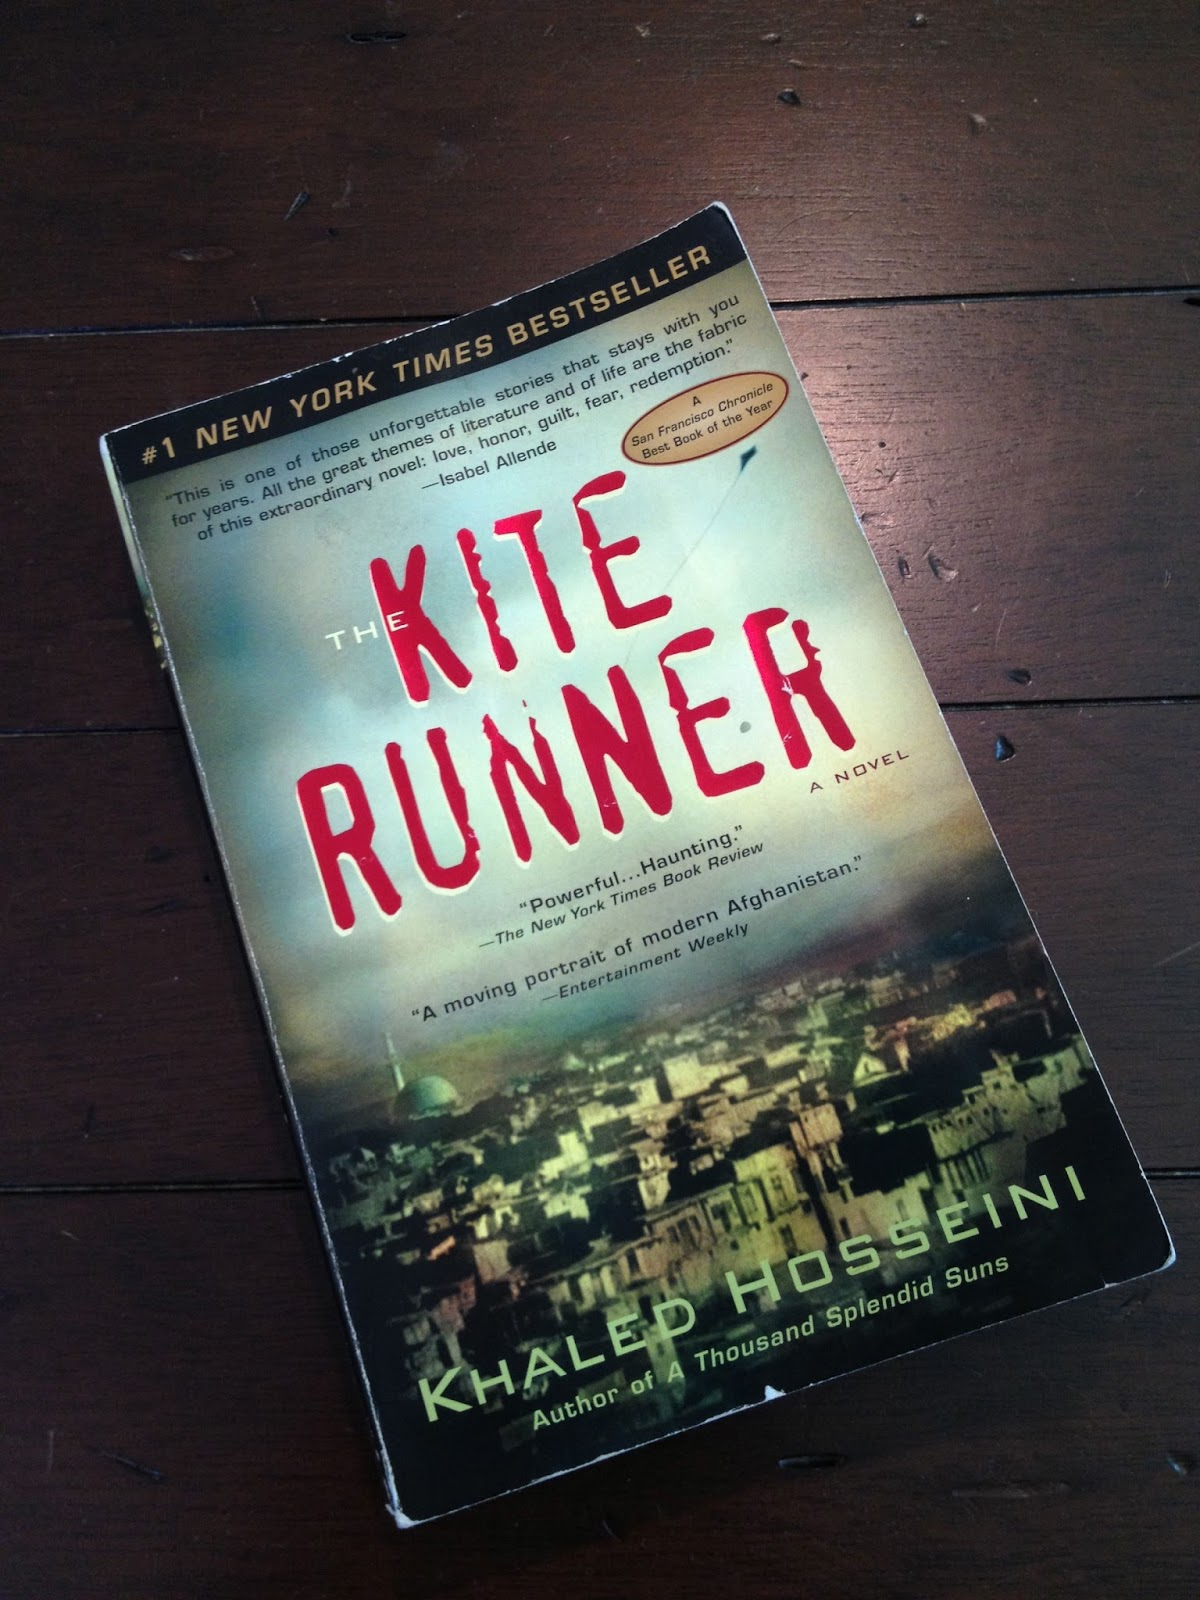 just a small town girl the kite runner a brief review i ve technically been reading this next book the kite runner since i wrote the last book related blog post but i also decided to paint the majority of my